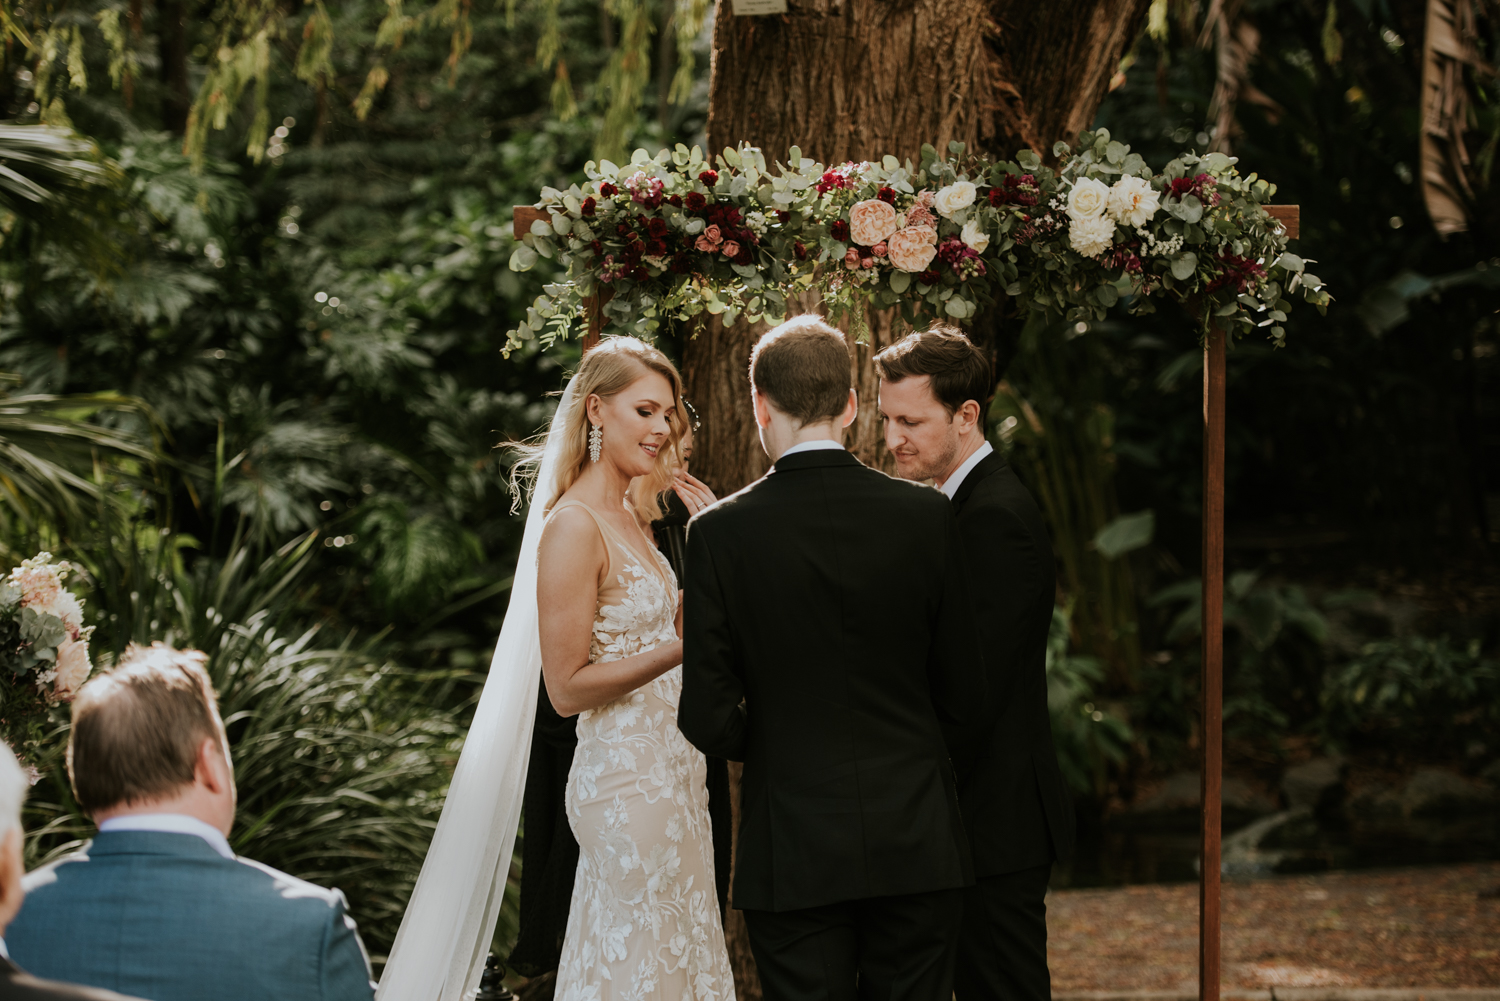 Brisbane Wedding Photographer | Engagement-Elopement Photography | Factory51-City Botantic Gardens Wedding-34.jpg